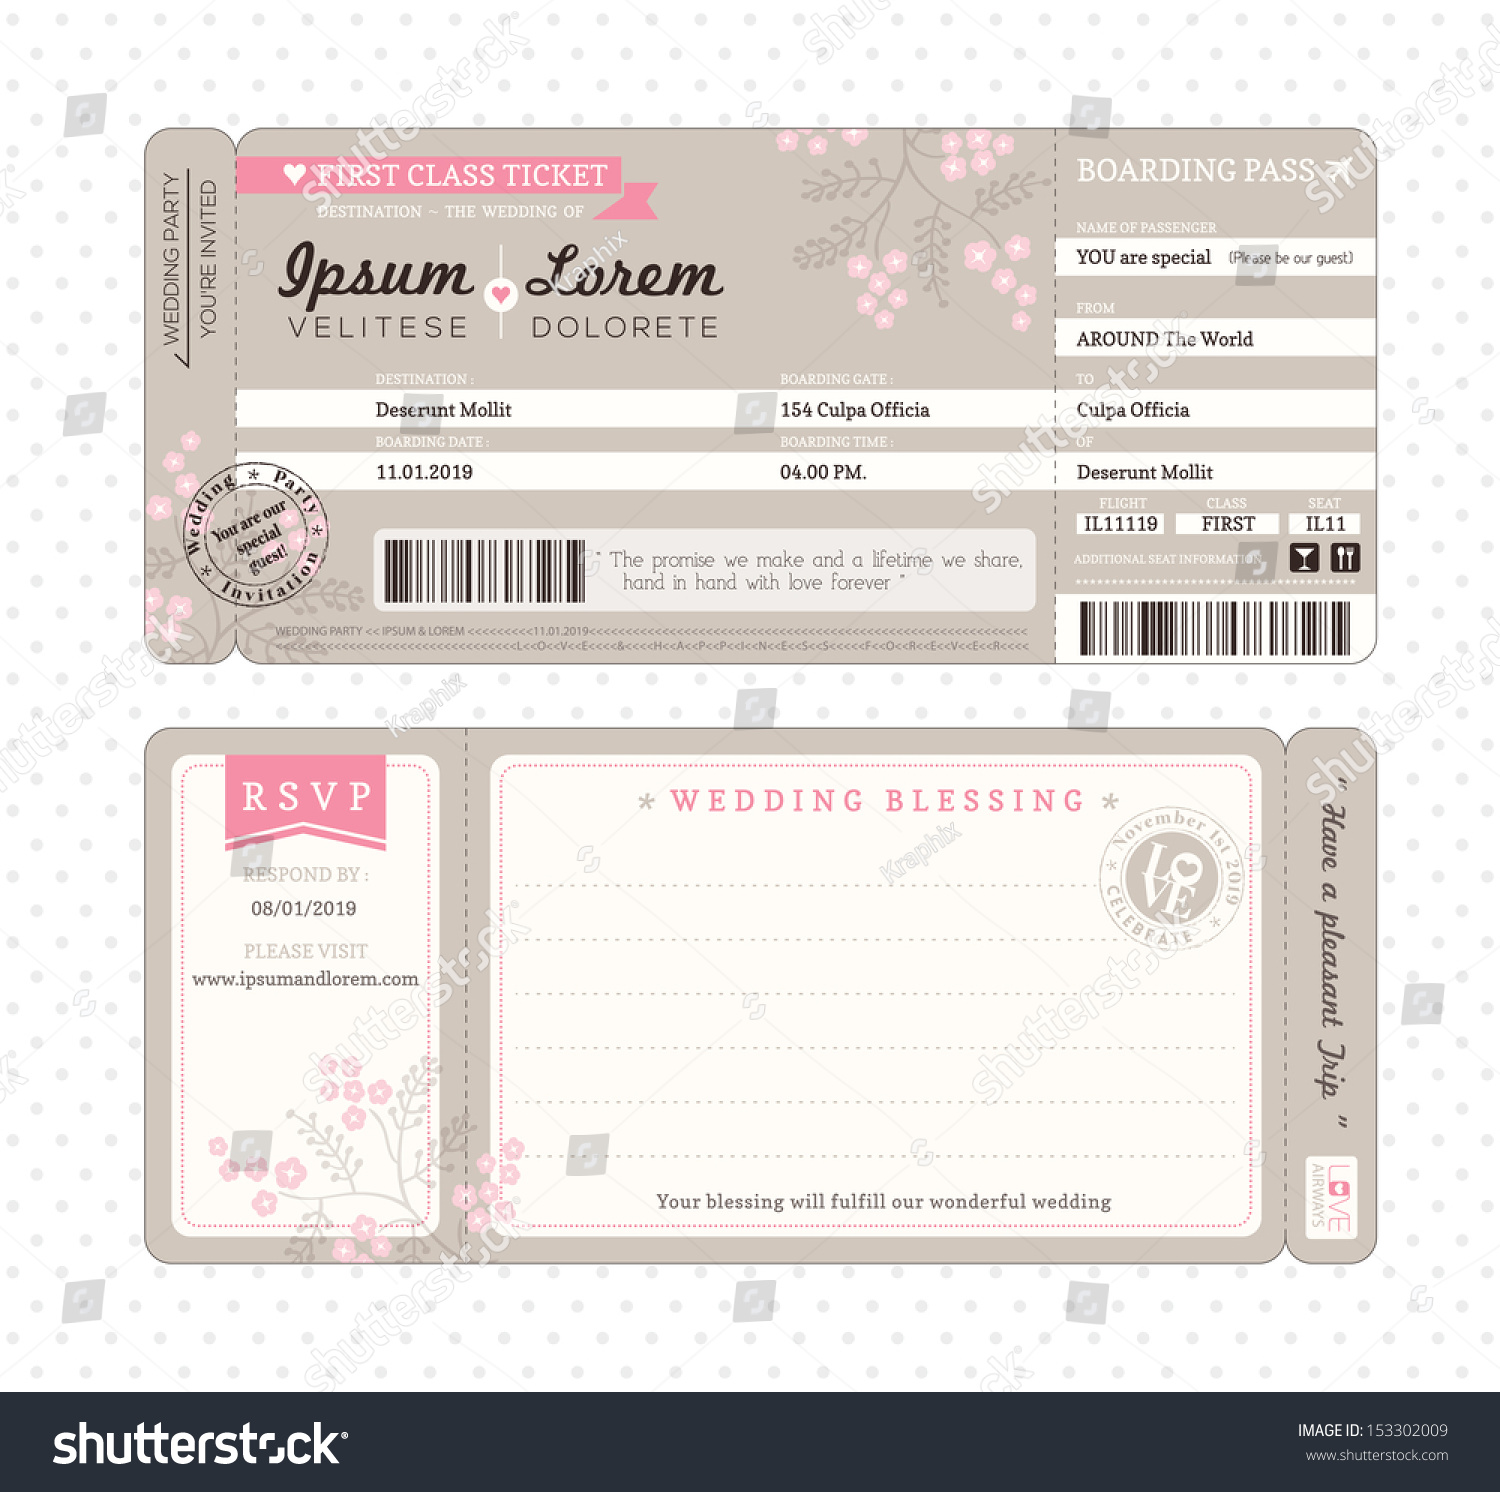 Boarding Pass Ticket Wedding Invitation Template Vector – E Ticket Template